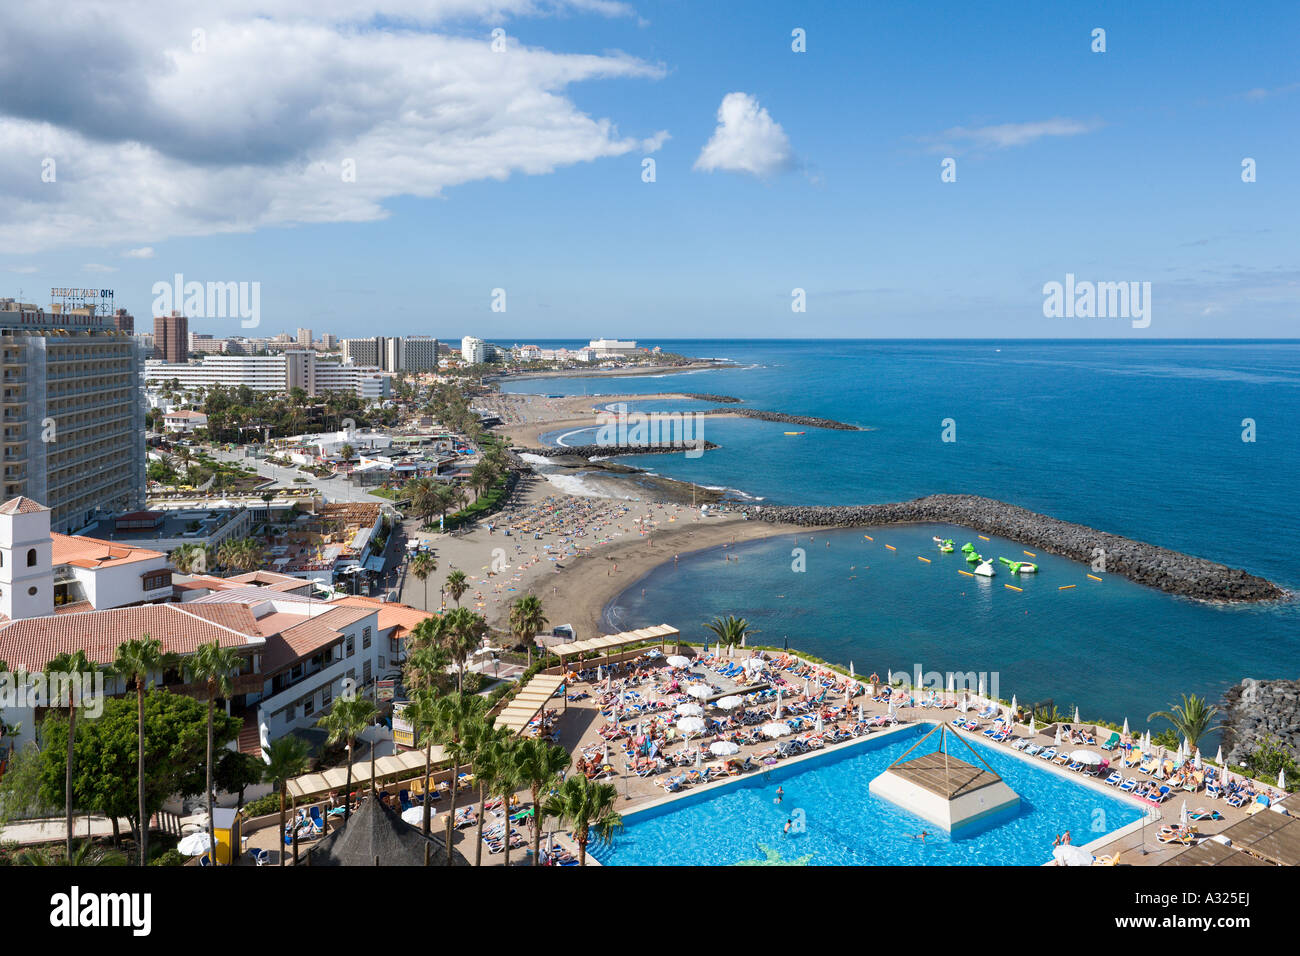 View looking south from the Hotel Iberostar Bouganville Playa, Playa de las Americas, Tenerife, Canary Islands, - Stock Image